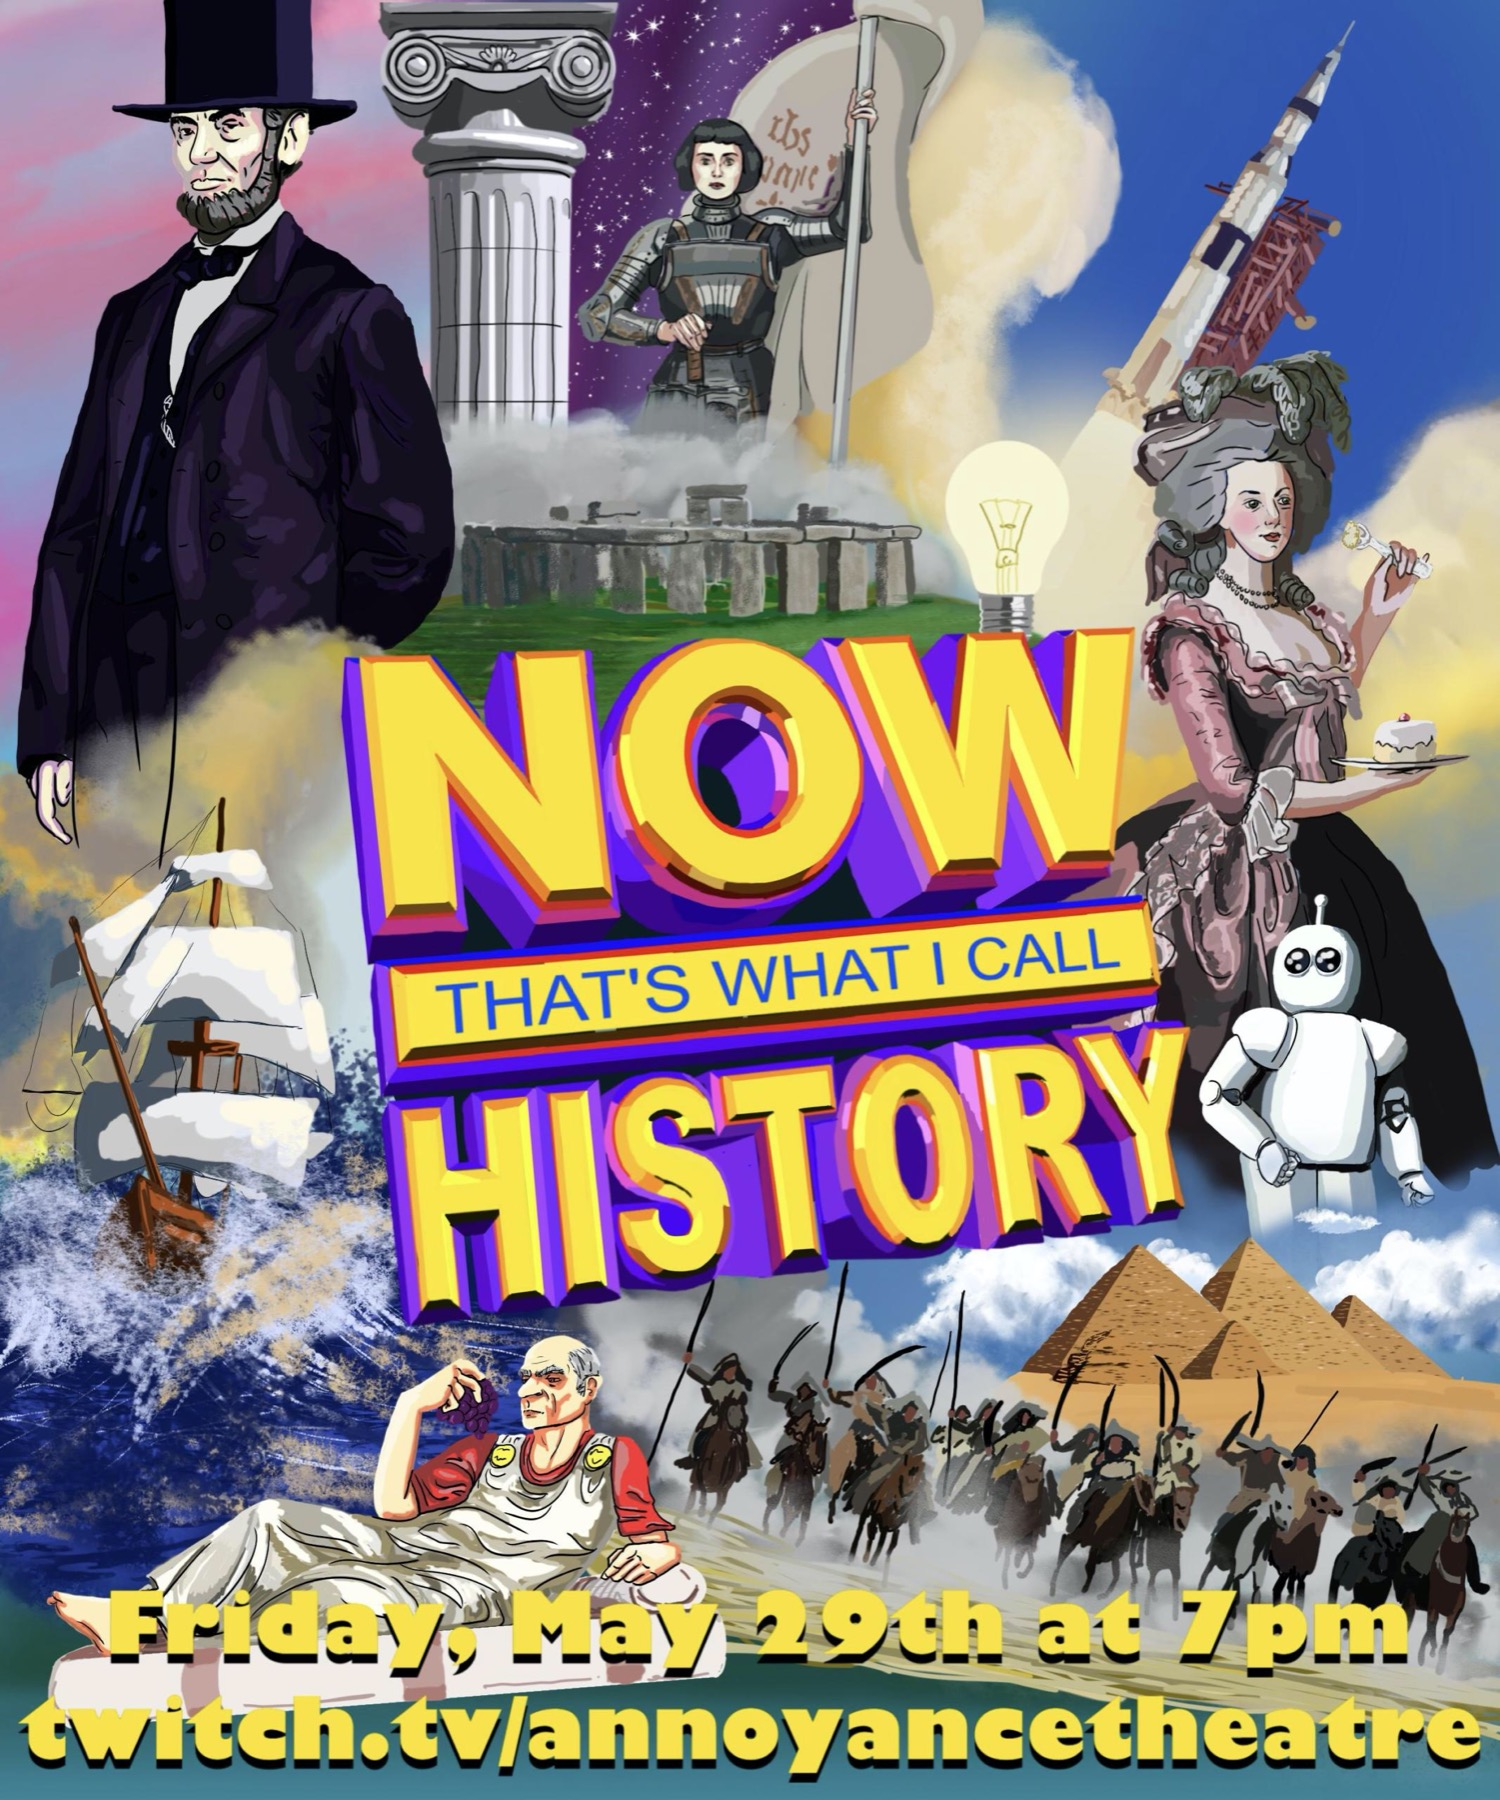 NOW THAT'S WHAT I CALL HISTORY